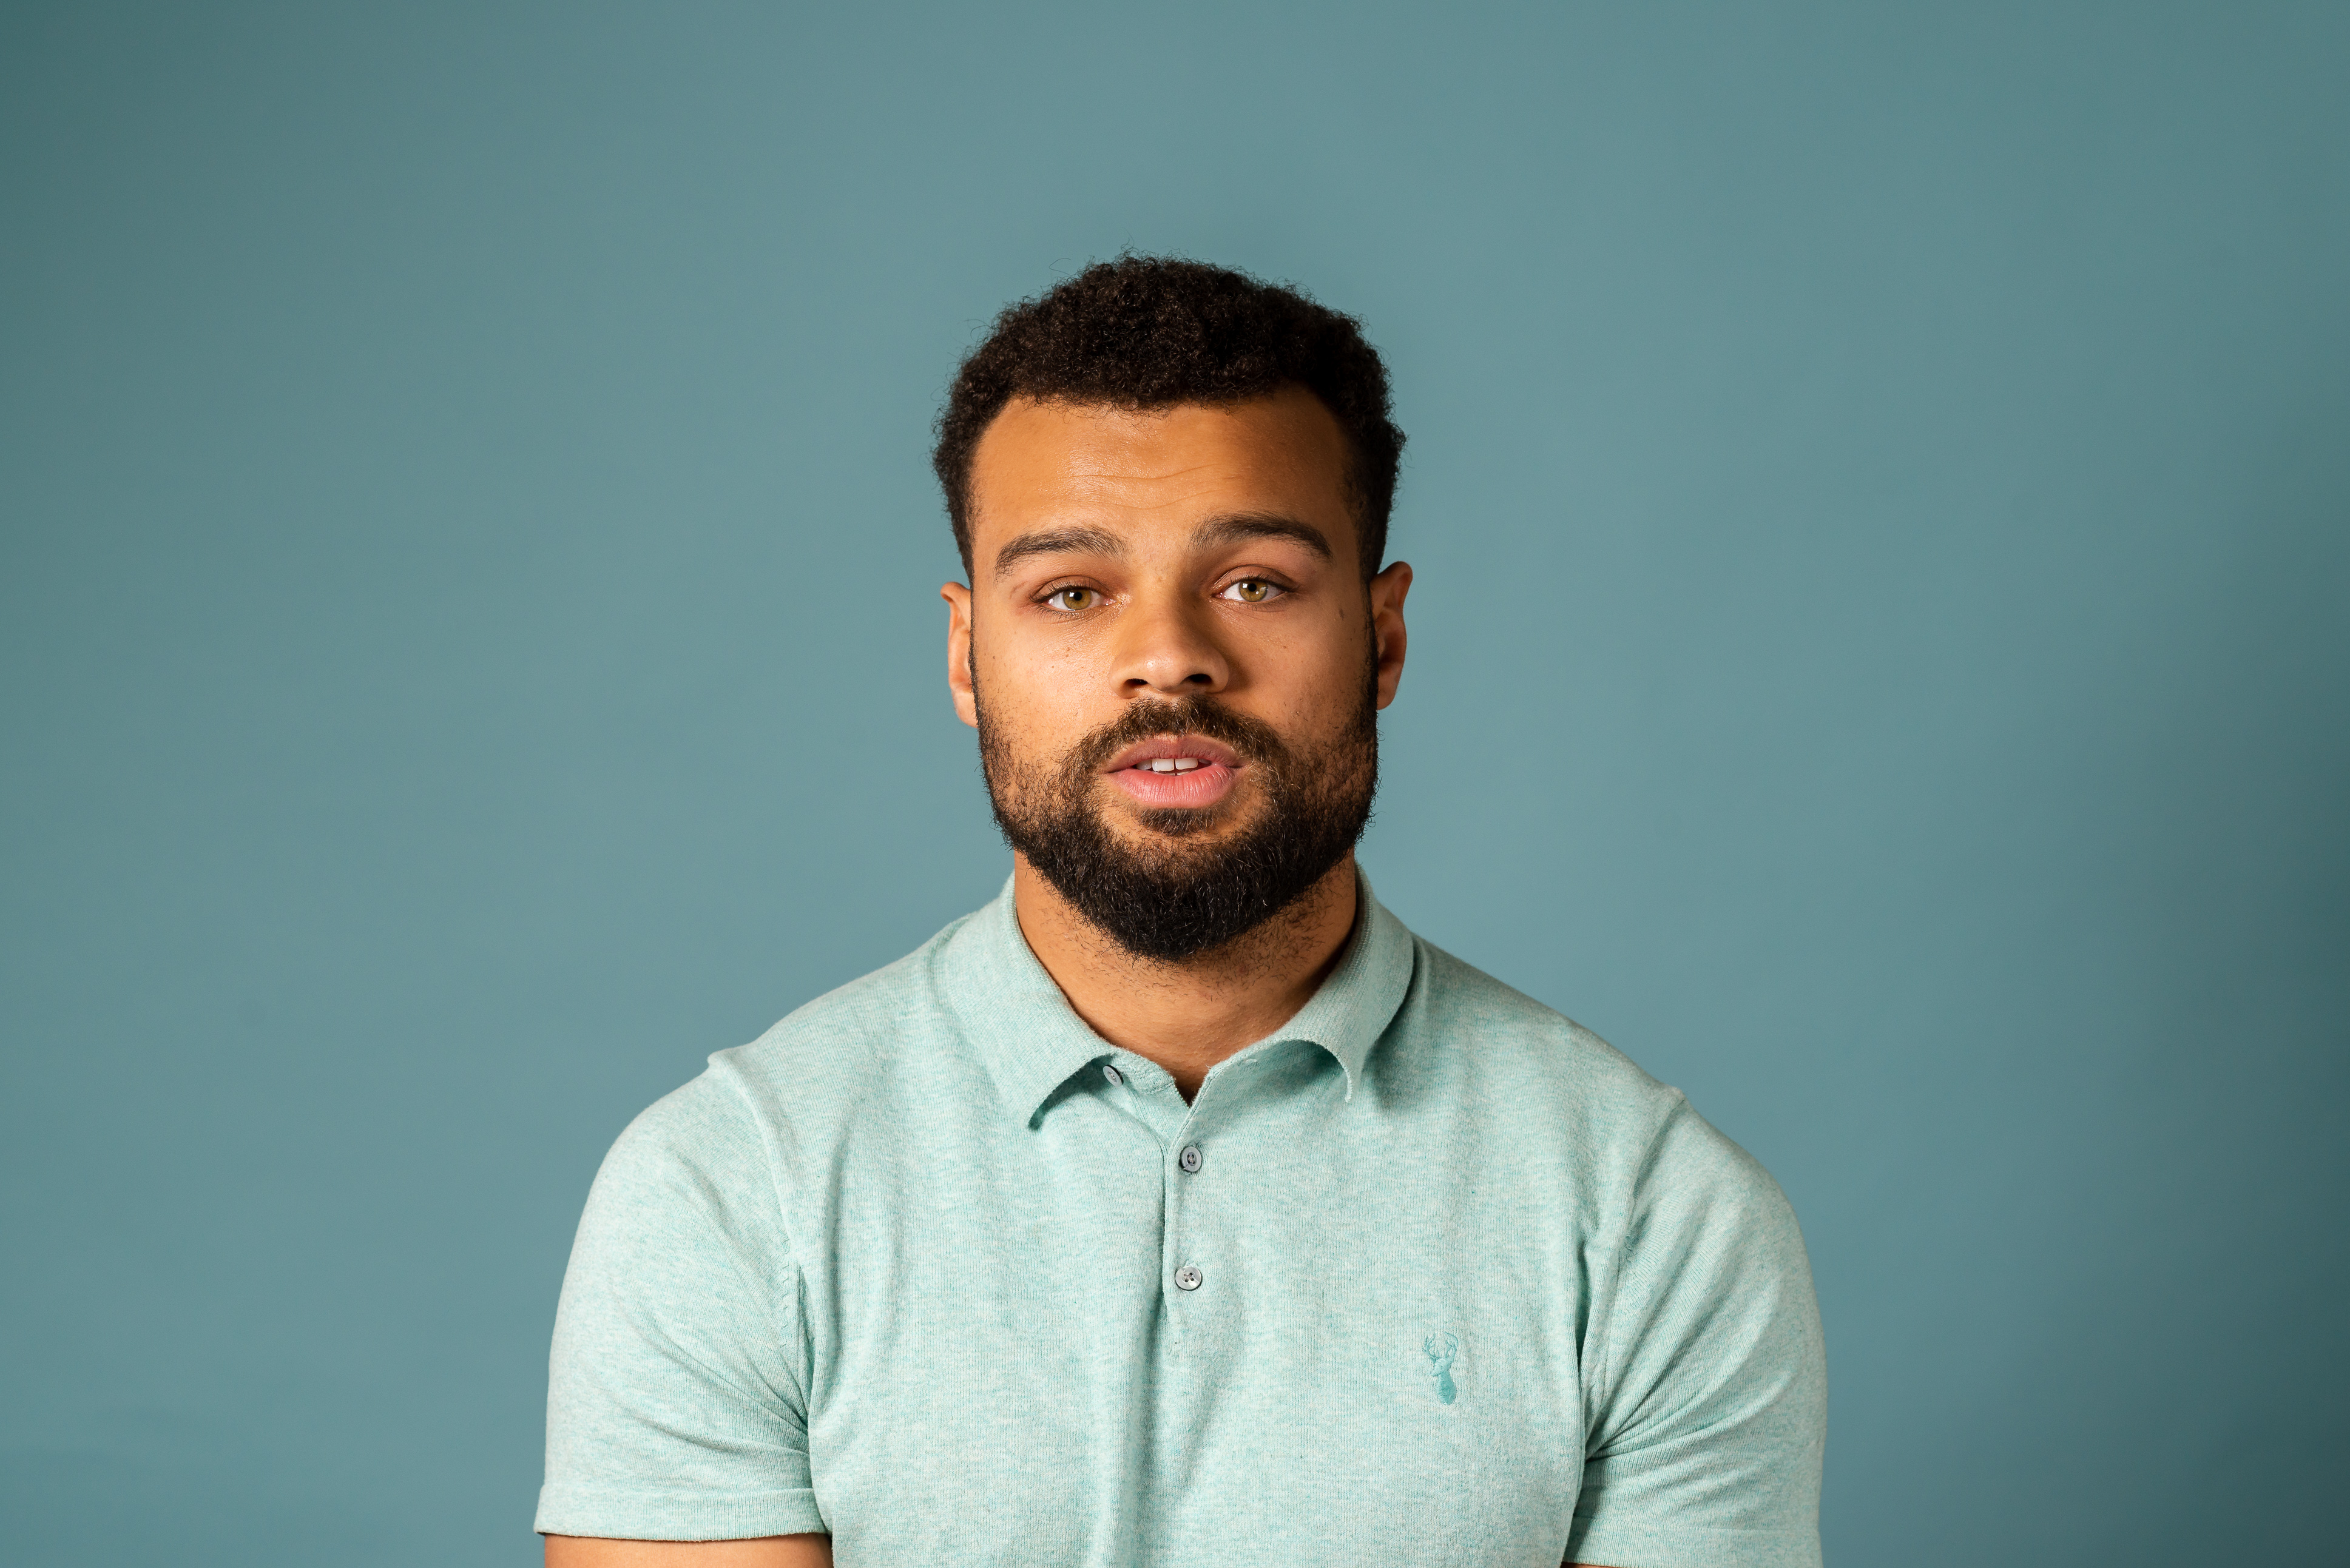 Mixed Up: 'I have been accepted by black people and distanced by white people'